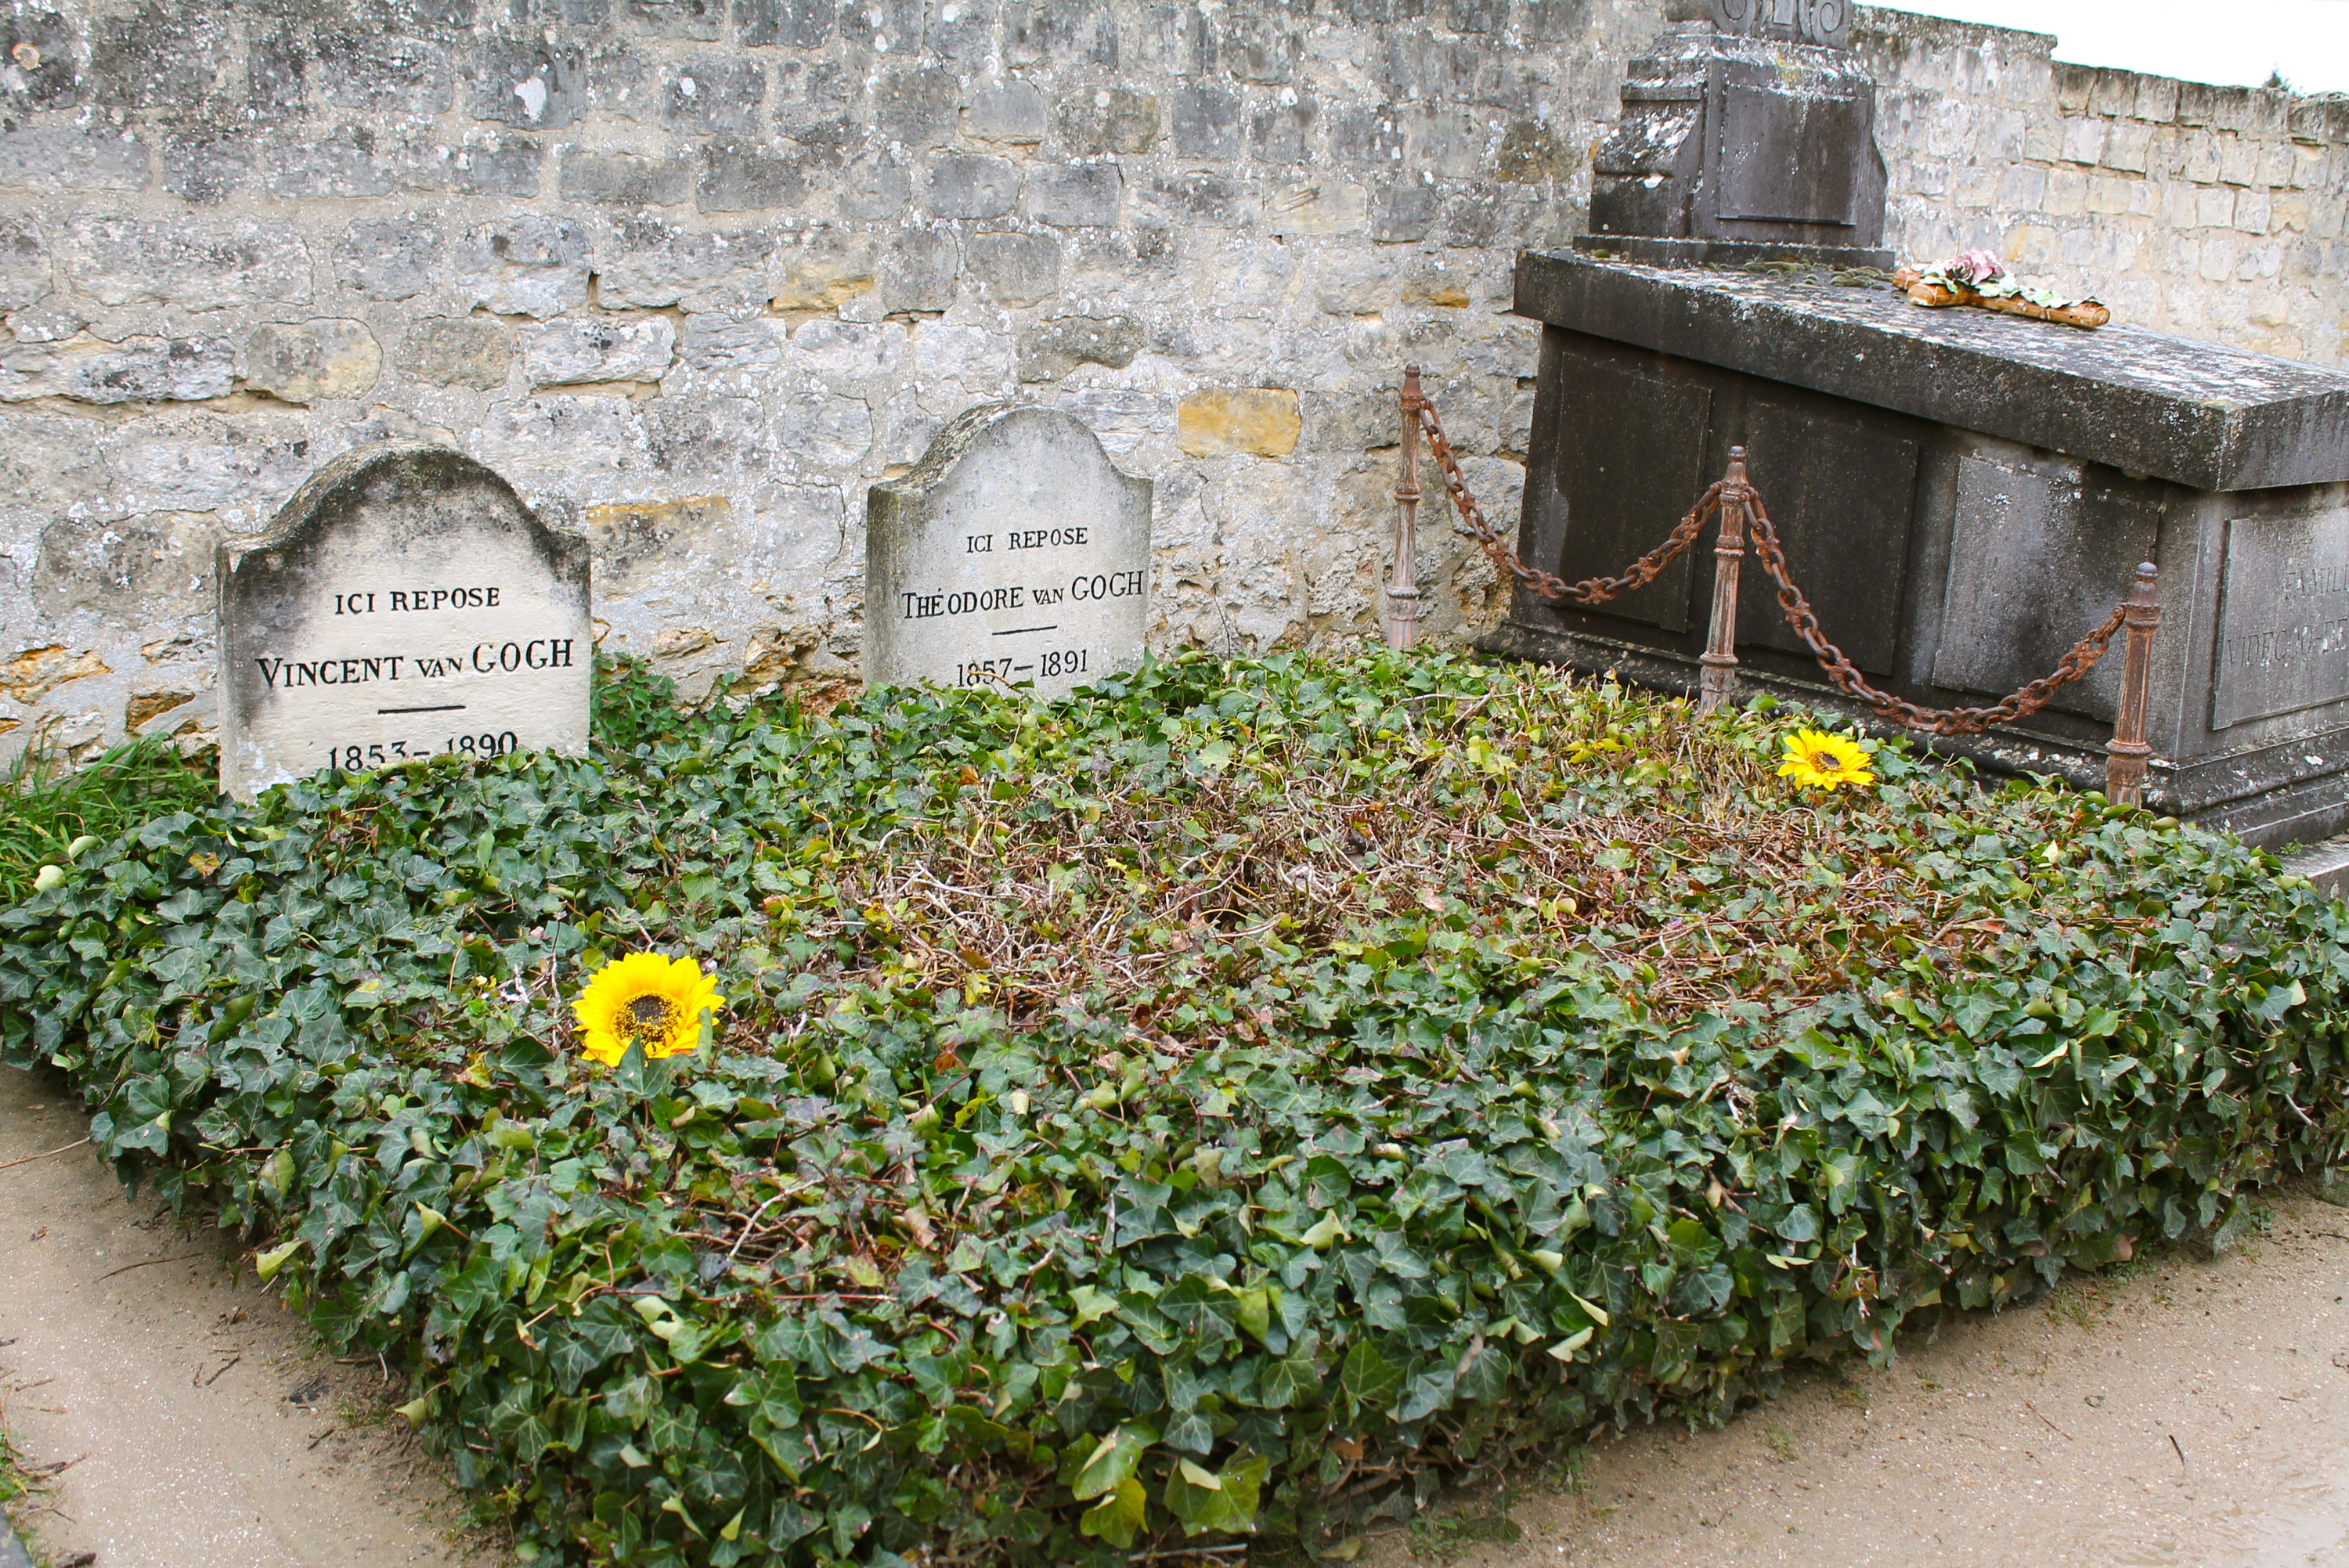 See van Gogh's final resting place